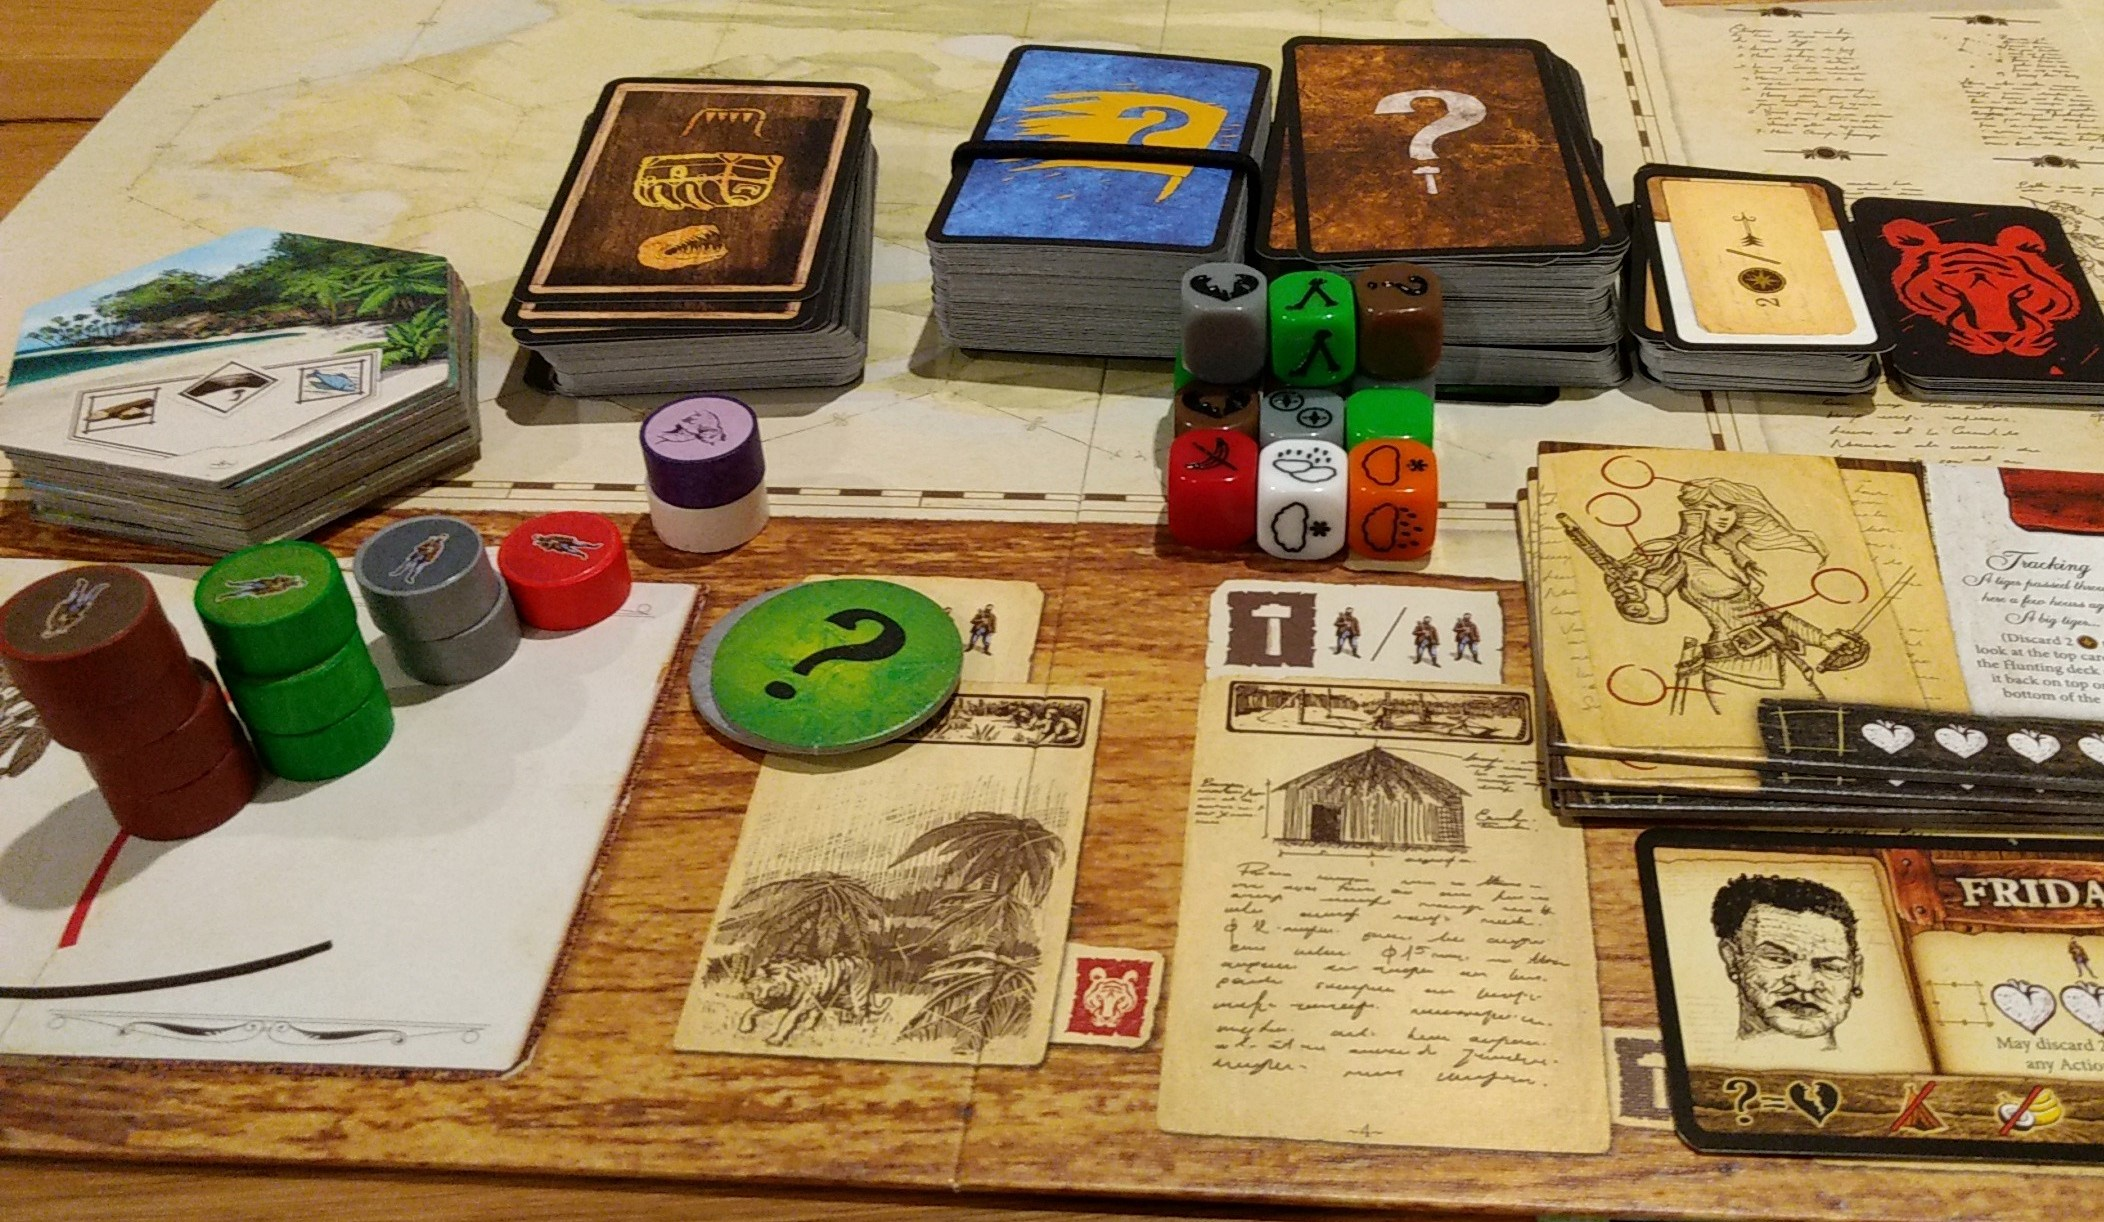 r2r-board-game-review-robinson-crusoe-components